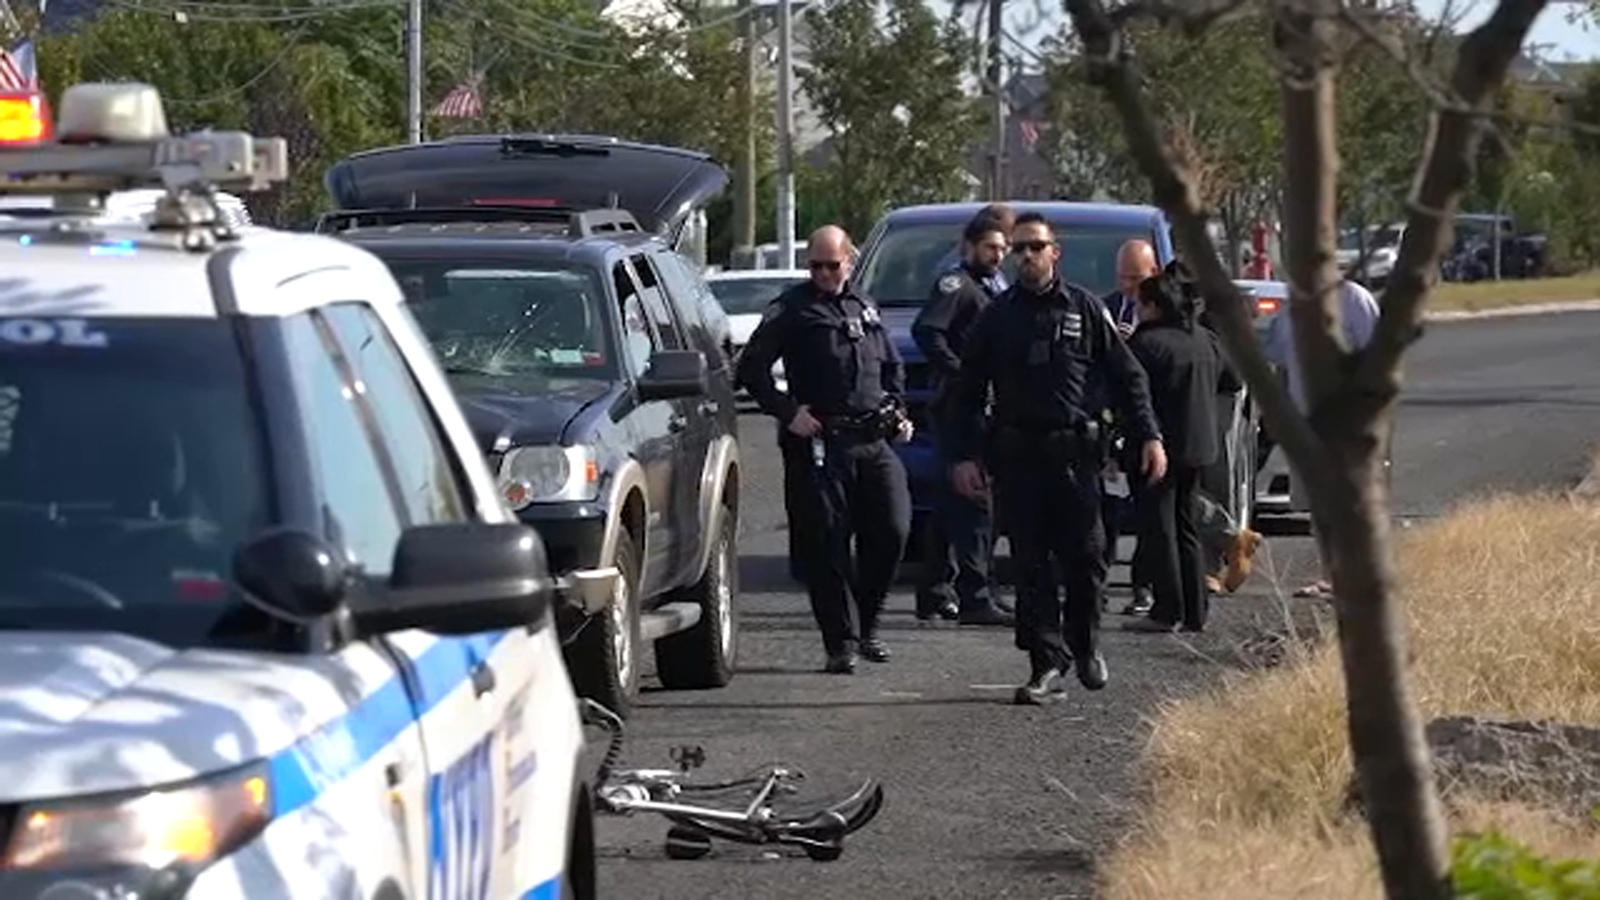 Queens man becomes 25th bicyclist killed on NYC streets this year